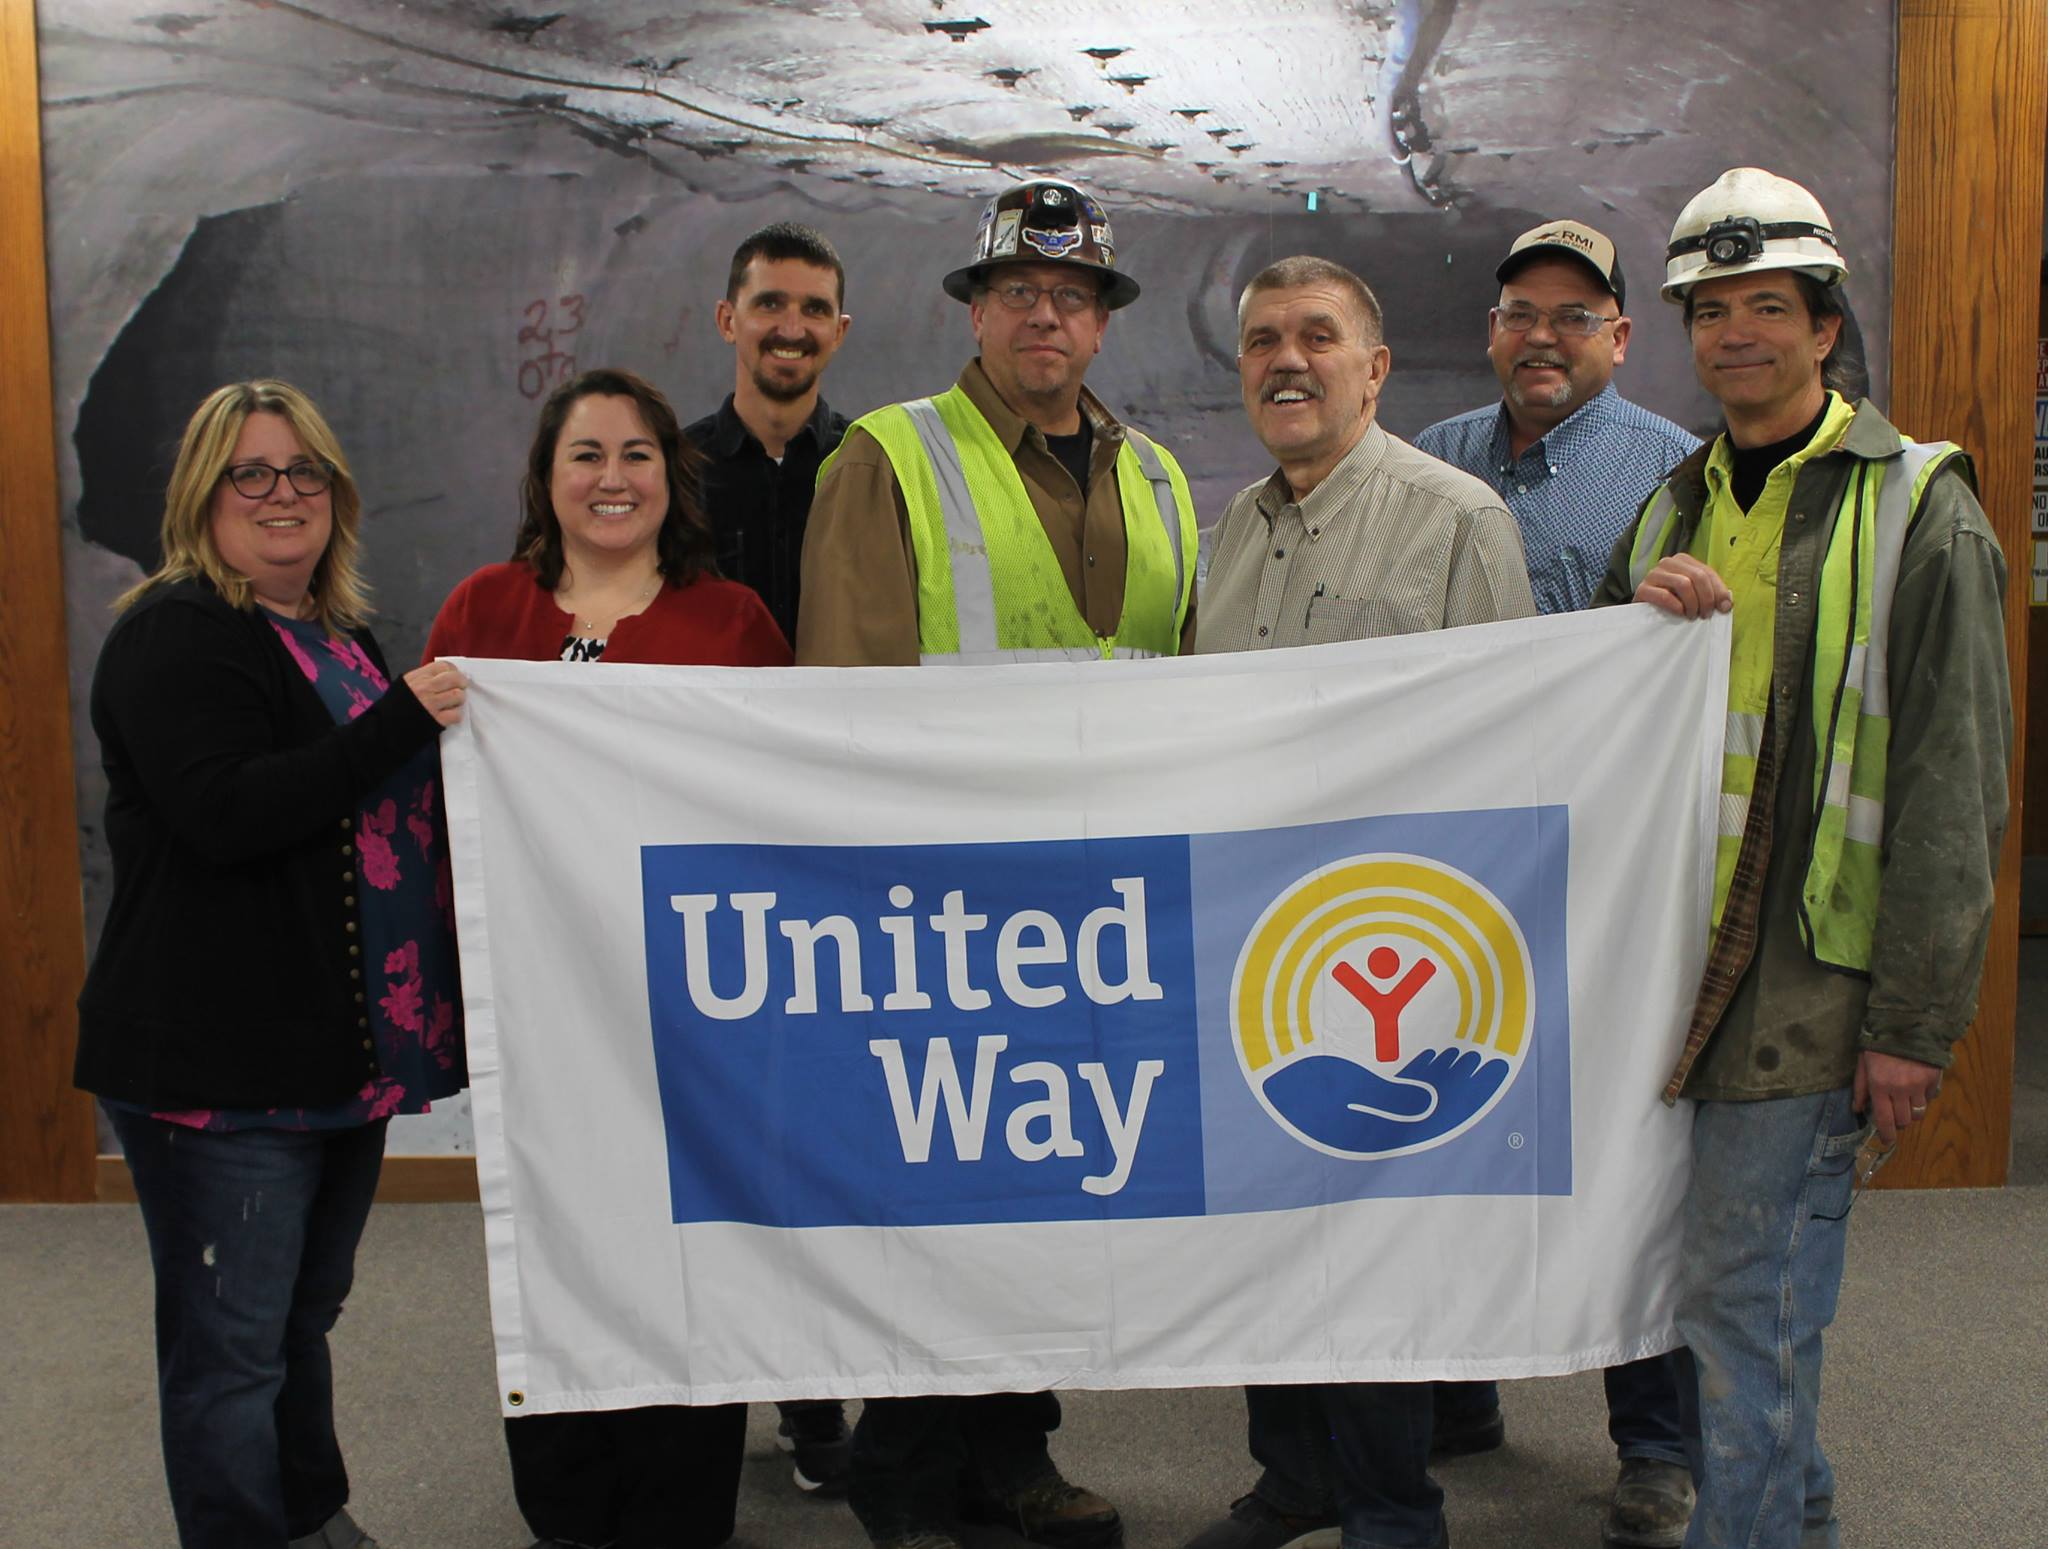 Tata Chemicals Hosts Successful Diaper Drive for United Way of Southwest Wyoming